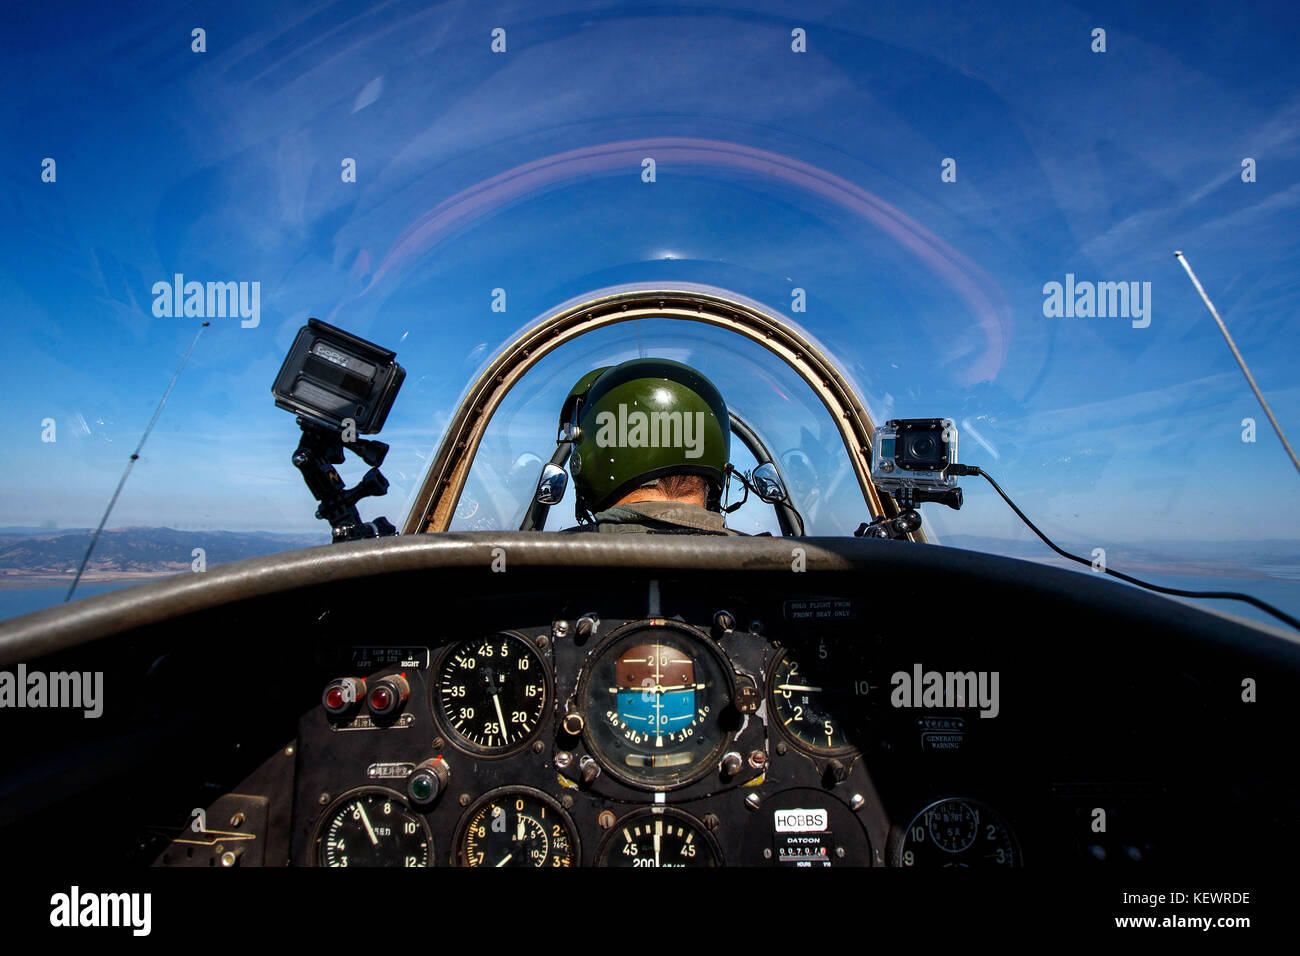 Nanchang CJ-6 Chinese fighter trainer airplane, California, United States of America - Stock Image